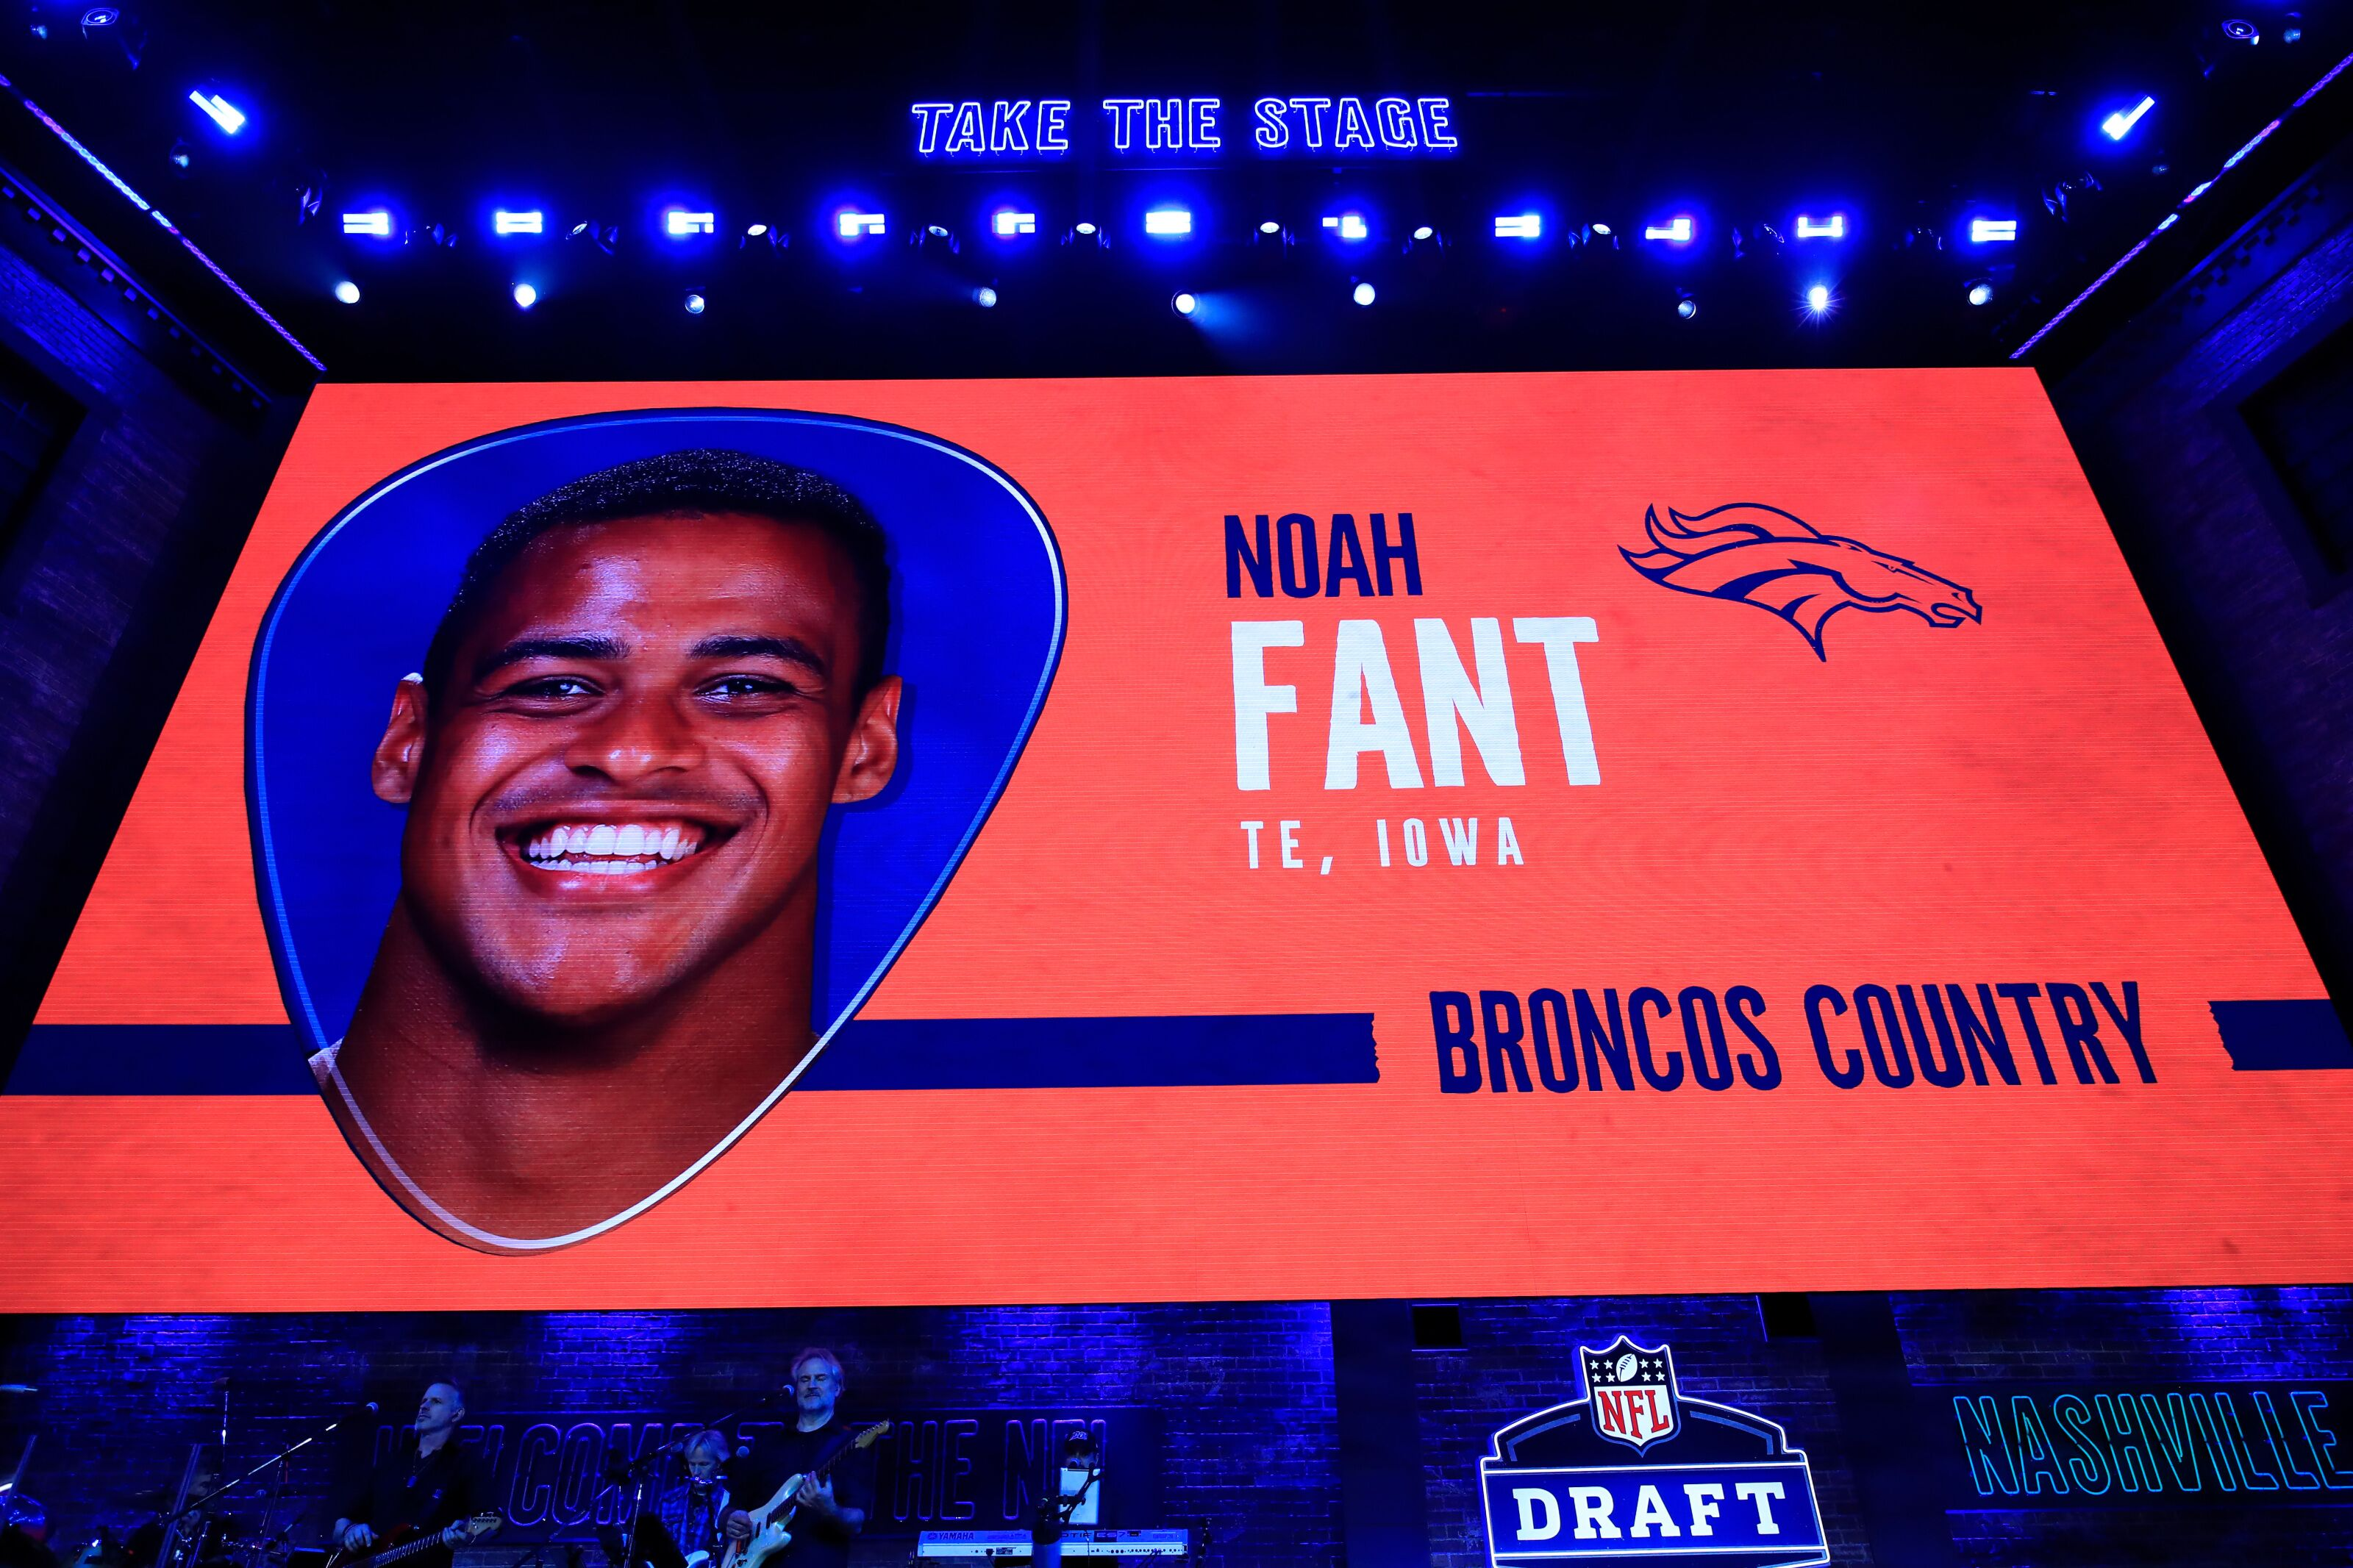 Noah Fant signs his first contract with the Denver Broncos